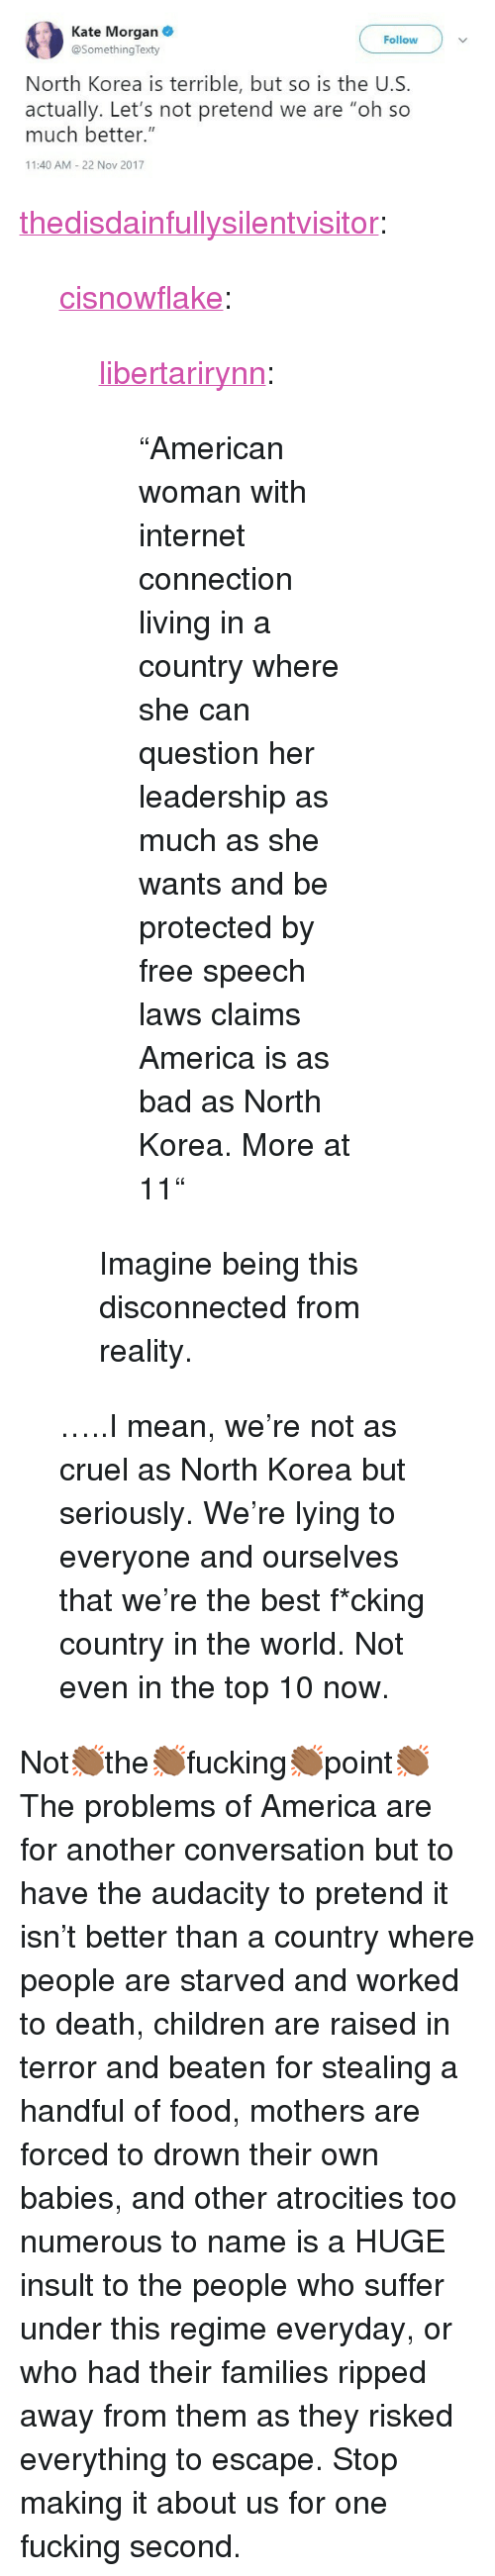 """Stealing A: Kate Morgan  @SomethingTexty  Follow  North Korea is terrible, but so is the U.S.  actually. Let's not pretend we are """"oh so  much better.""""  11:40 AM 22 Nov 2017 <p><a href=""""https://thedisdainfullysilentvisitor.tumblr.com/post/170748009428/cisnowflake-libertarirynn-american-woman"""" class=""""tumblr_blog"""">thedisdainfullysilentvisitor</a>:</p>  <blockquote><p><a href=""""http://cisnowflake.tumblr.com/post/170729196316/libertarirynn-american-woman-with-internet"""" class=""""tumblr_blog"""">cisnowflake</a>:</p> <blockquote> <p><a href=""""https://libertarirynn.tumblr.com/post/170721465409/american-woman-with-internet-connection-living-in"""" class=""""tumblr_blog"""">libertarirynn</a>:</p> <blockquote><p>""""American woman with internet connection living in a country where she can question her leadership as much as she wants and be protected by free speech laws claims America is as bad as North Korea. More at 11""""</p></blockquote>  <p>Imagine being this disconnected from reality.</p> </blockquote> <p>…..I mean, we're not as cruel as North Korea but seriously. We're lying to everyone and ourselves that we're the best f*cking country in the world. Not even in the top 10 now.</p></blockquote>  <p>Not👏🏾the👏🏾fucking👏🏾point👏🏾</p><p>The problems of America are for another conversation but to have the audacity to pretend it isn't better than a country where people are starved and worked to death, children are raised in terror and beaten for stealing a handful of food, mothers are forced to drown their own babies, and other atrocities too numerous to name is a HUGE insult to the people who suffer under this regime everyday, or who had their families ripped away from them as they risked everything to escape. Stop making it about us for one fucking second.</p>"""